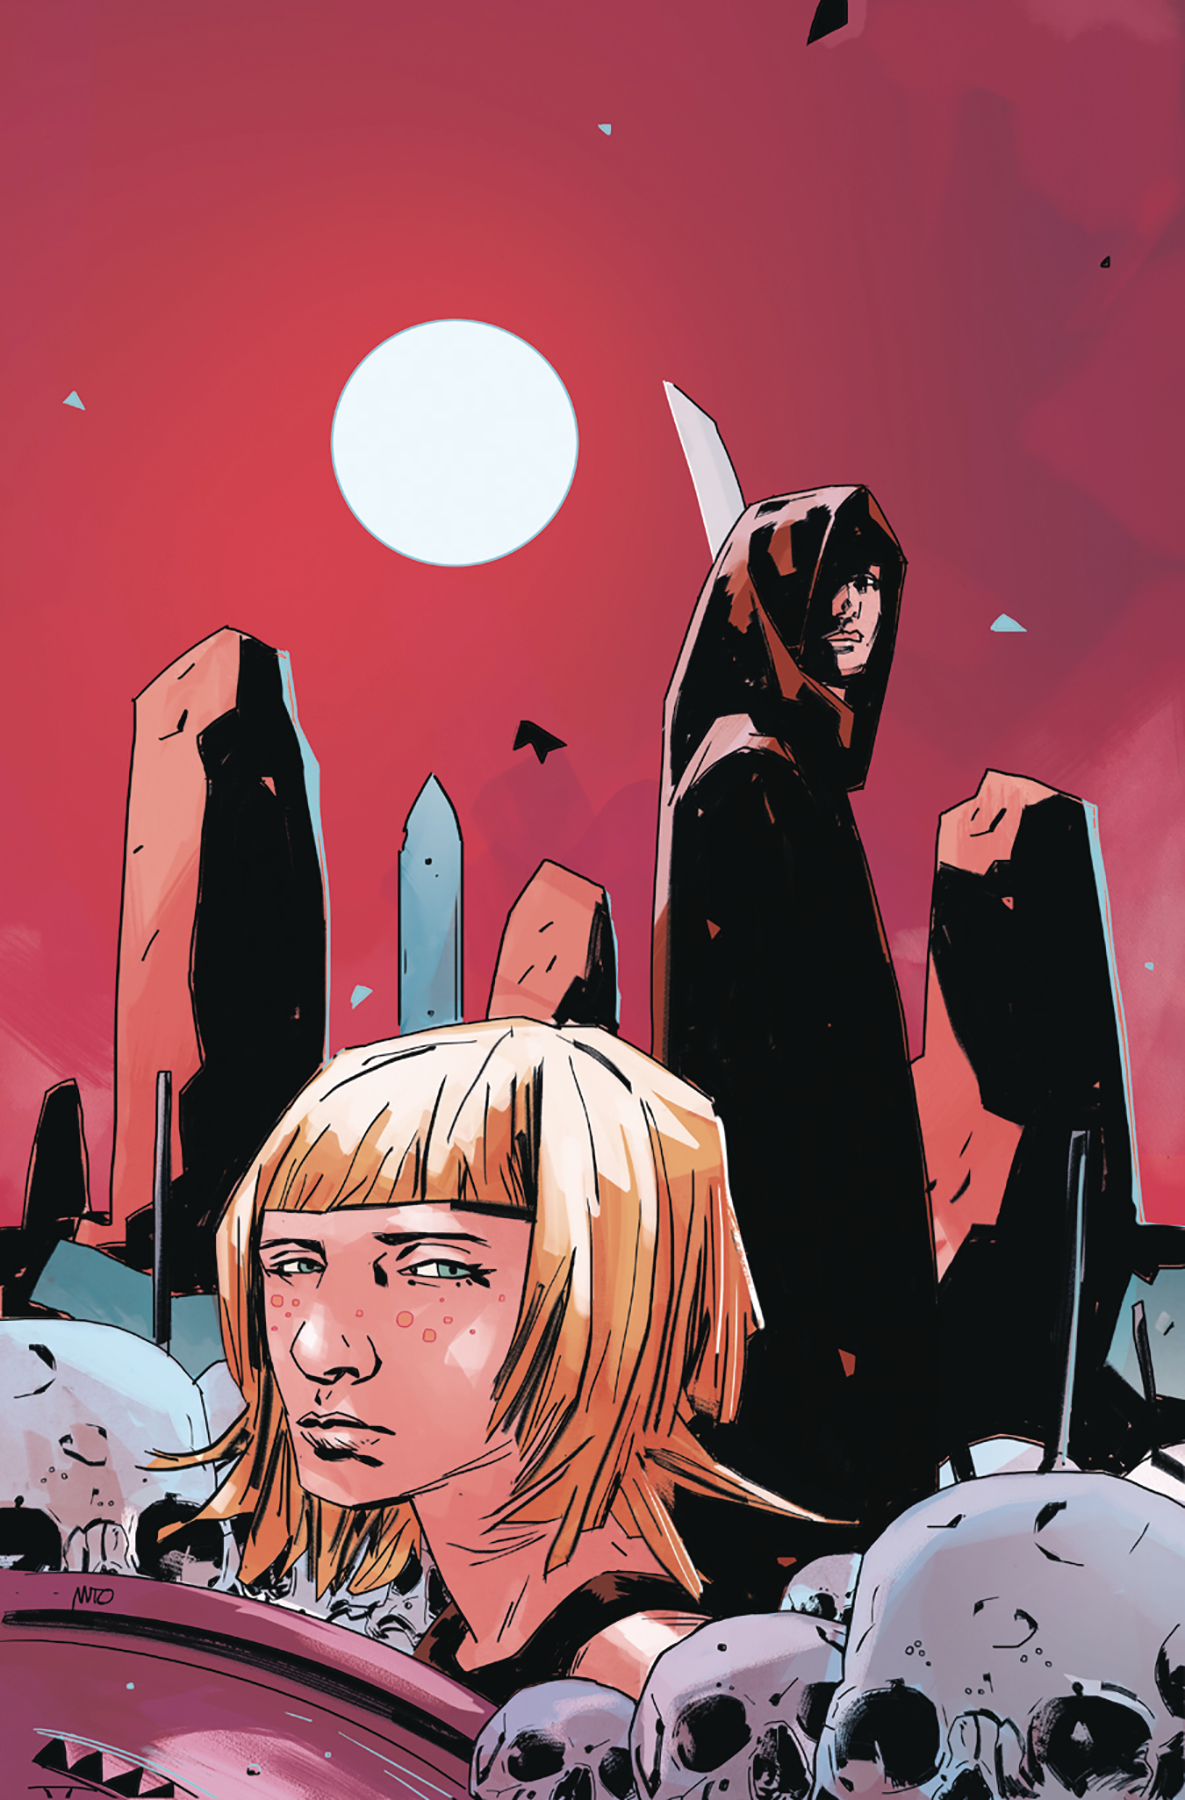 Clankillers #1  is dark and gritty in way readers might not expect.